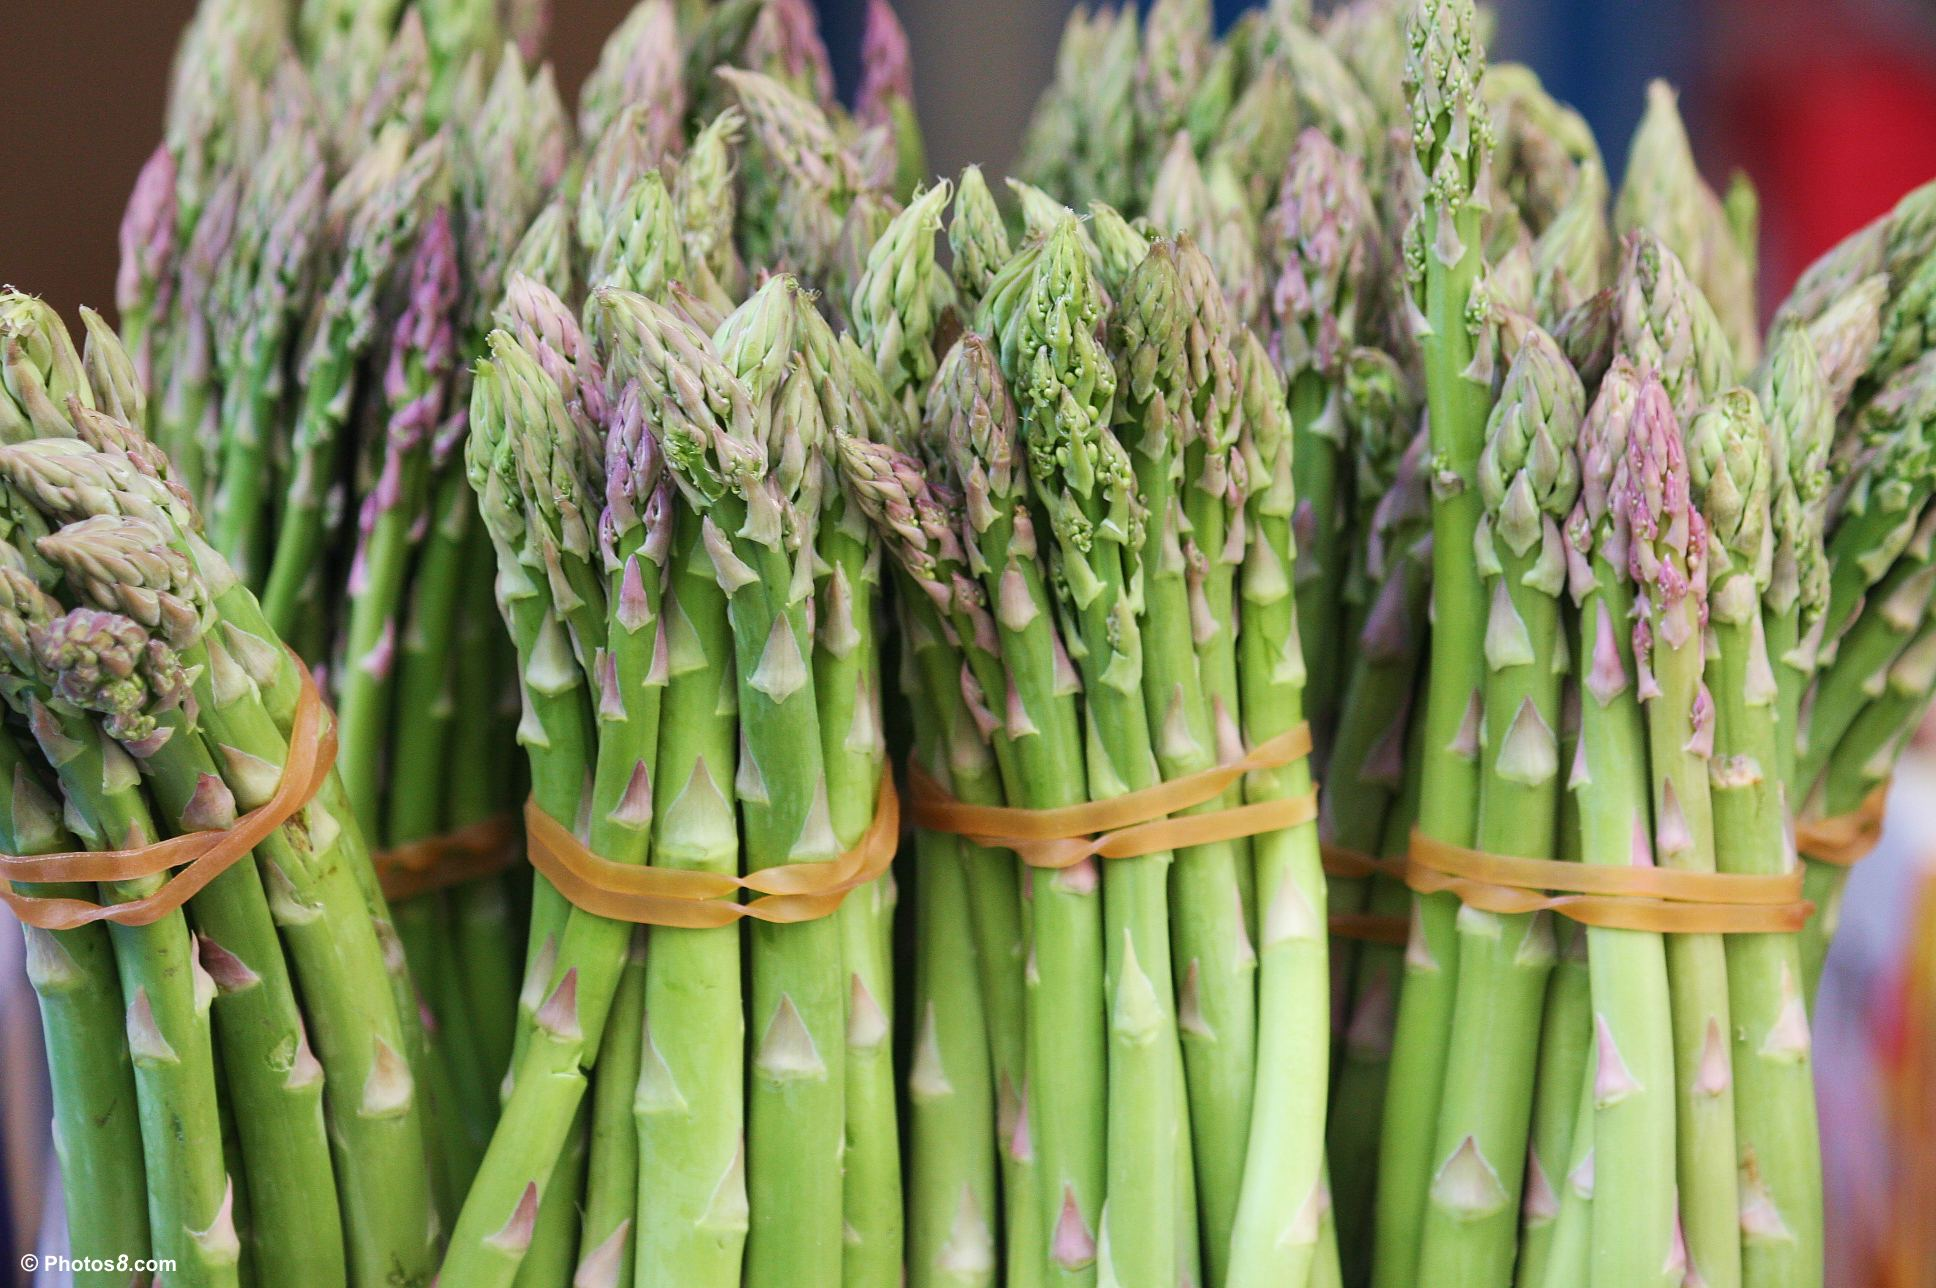 Summer Vegetables: Asparagus